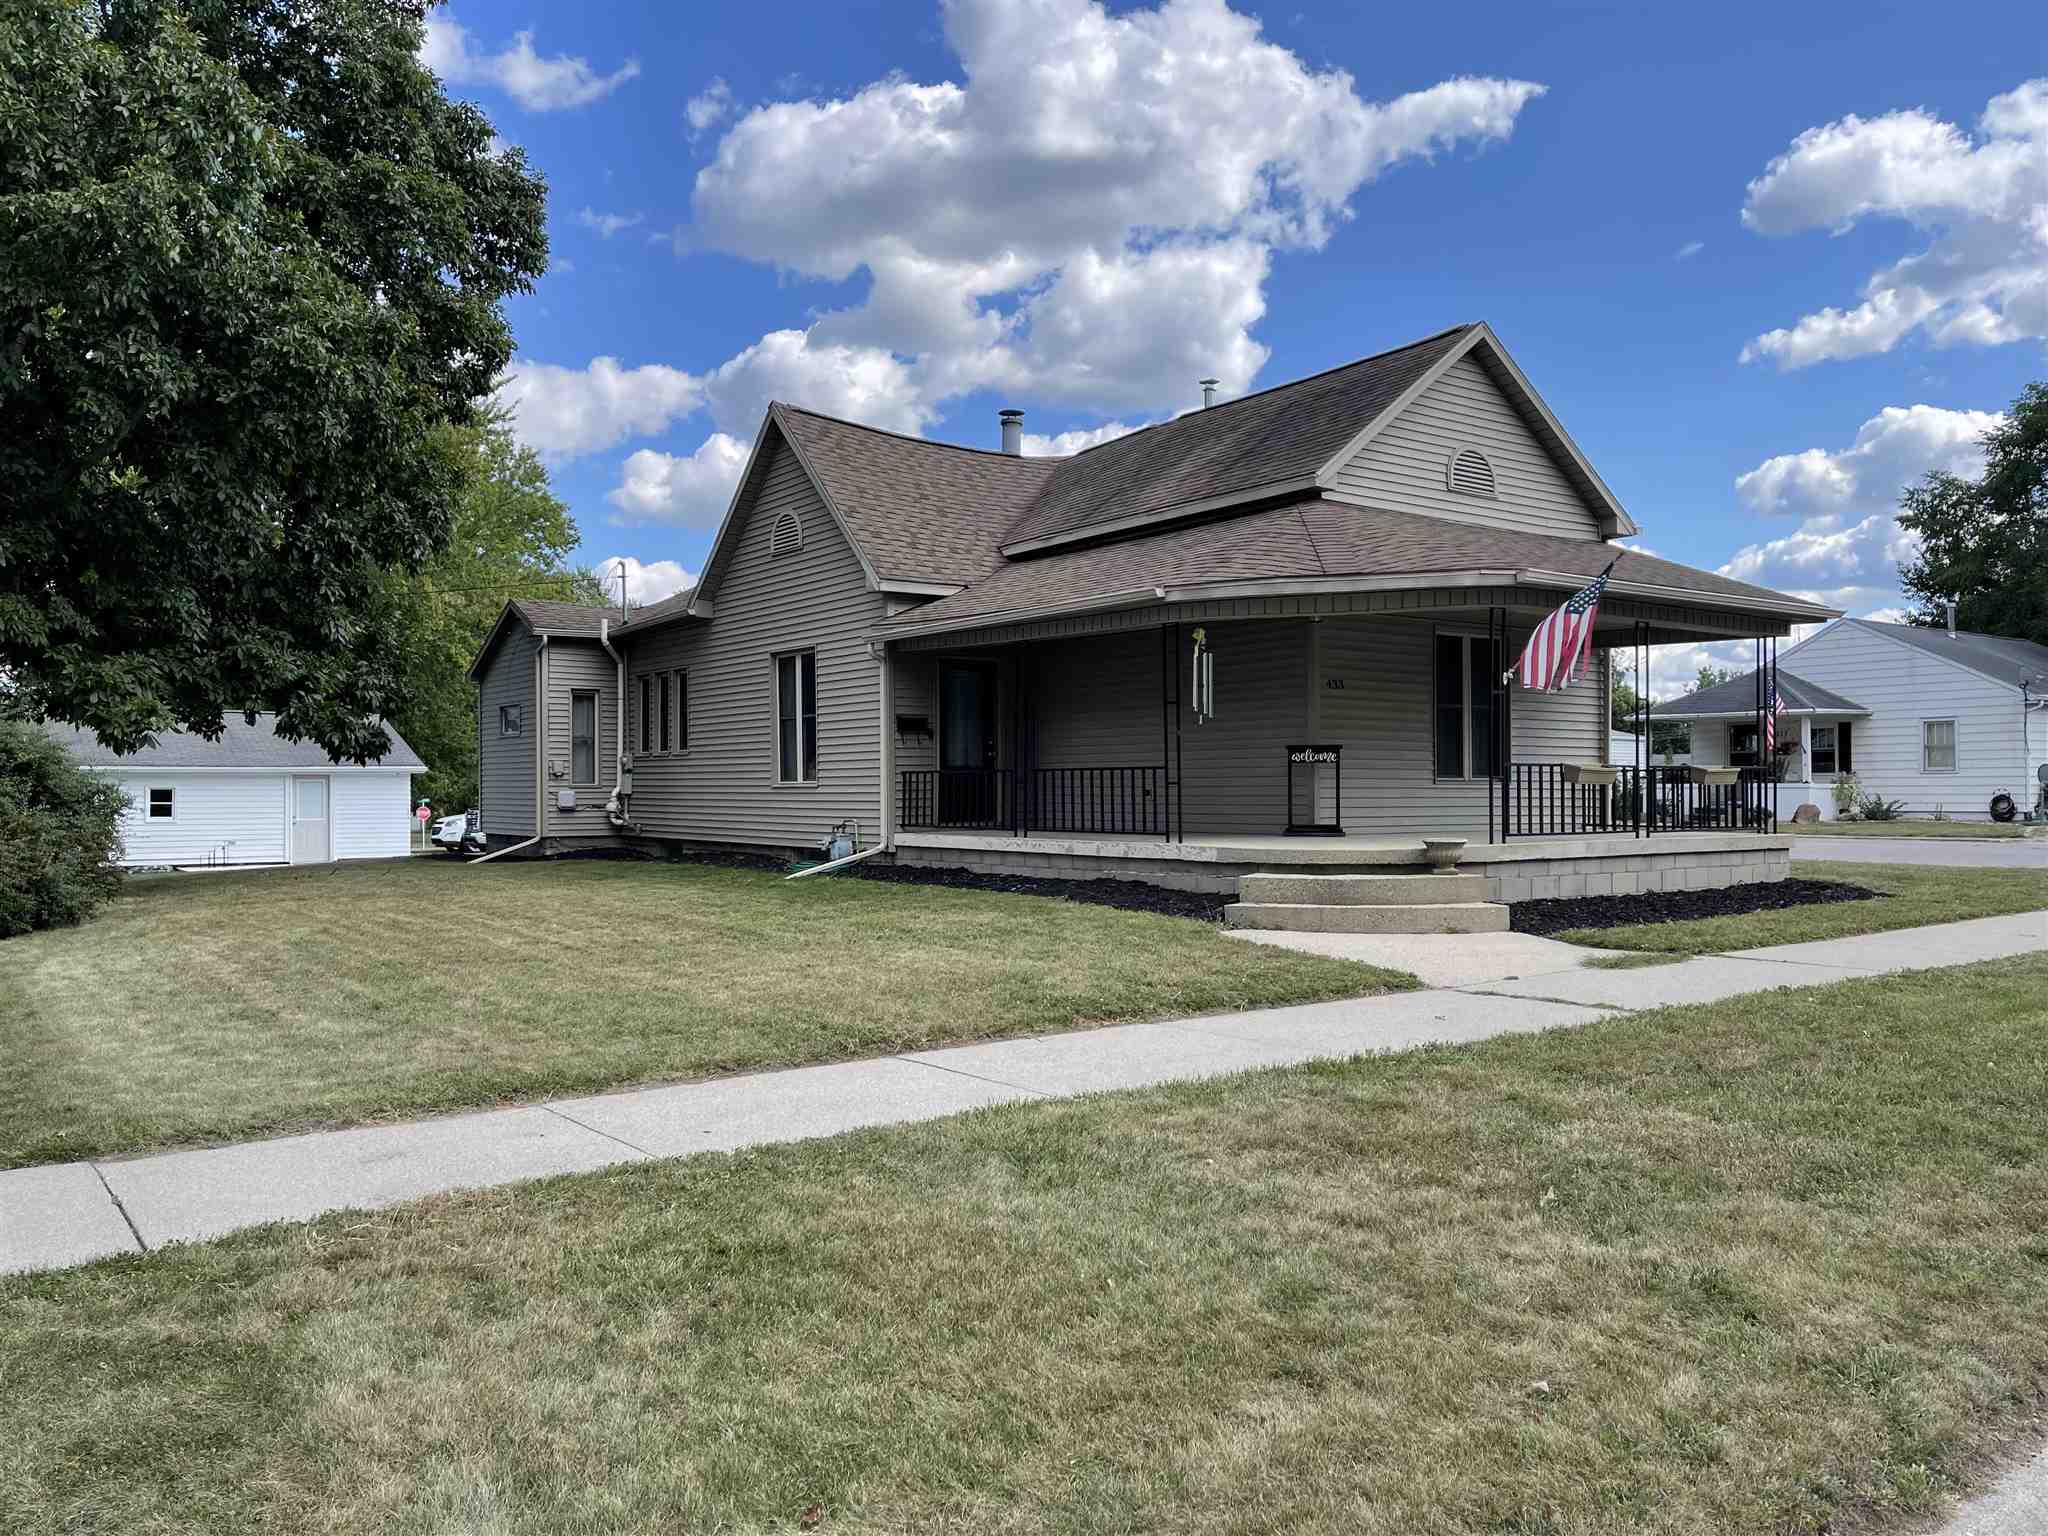 433 S Columbia Street, Warsaw, IN 46580